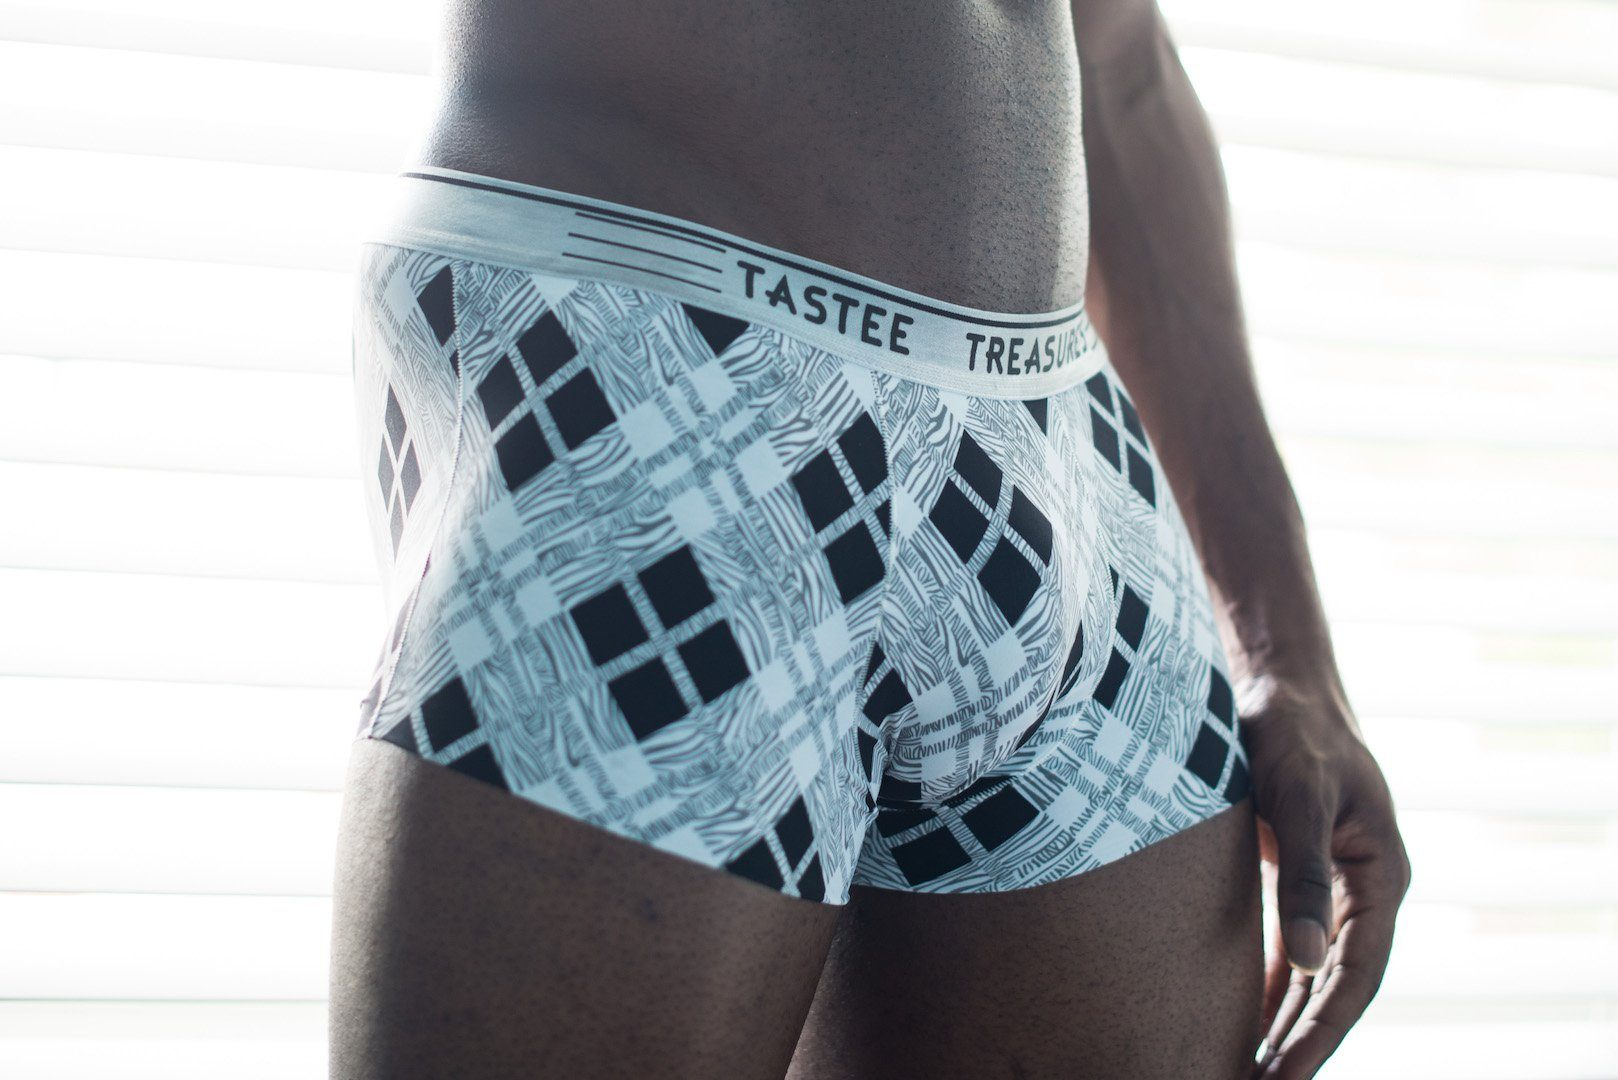 B&W Plaid Boxer Briefs Boxer Briefs TasteeTreasures 26in-28in